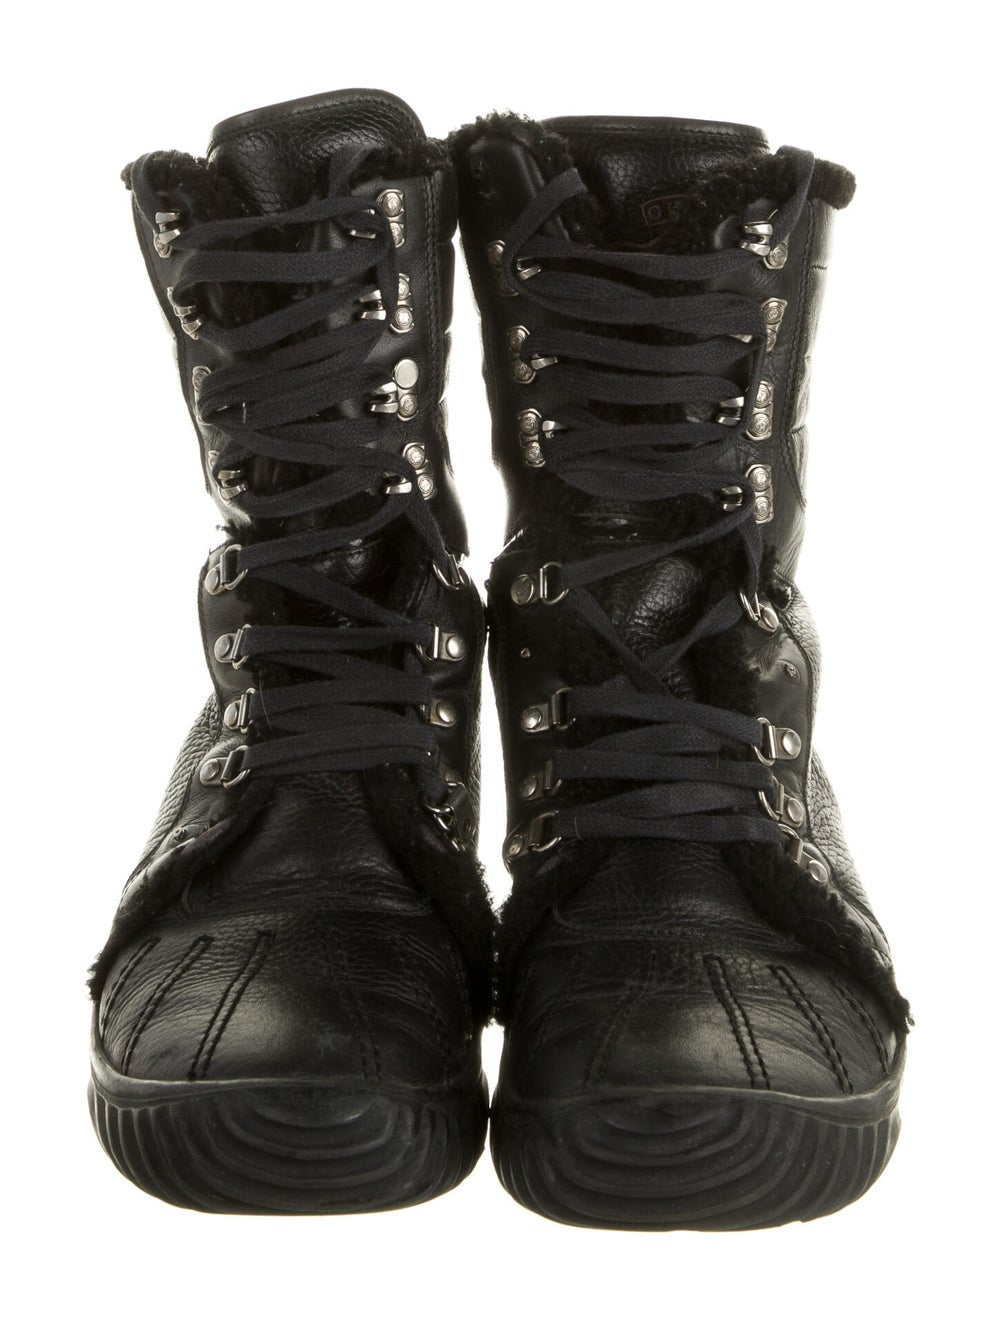 Gucci Leather Combat Boots Black - image 3